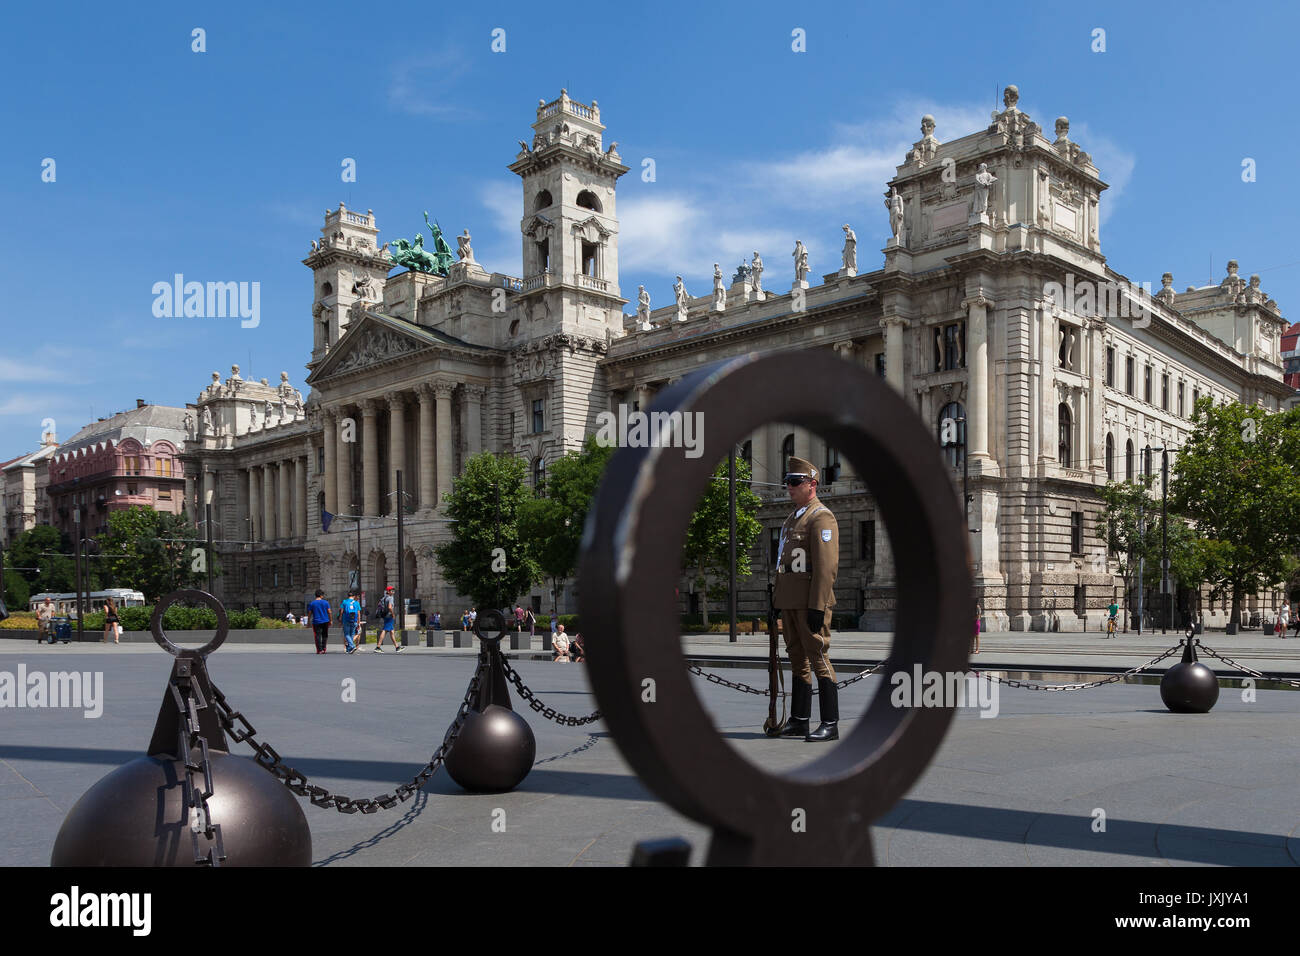 Ministry of Agriculture building, Museum of Ethnography, behind Parliament building, Budapest Hungary shot from parliament side with a guard on duty. - Stock Image